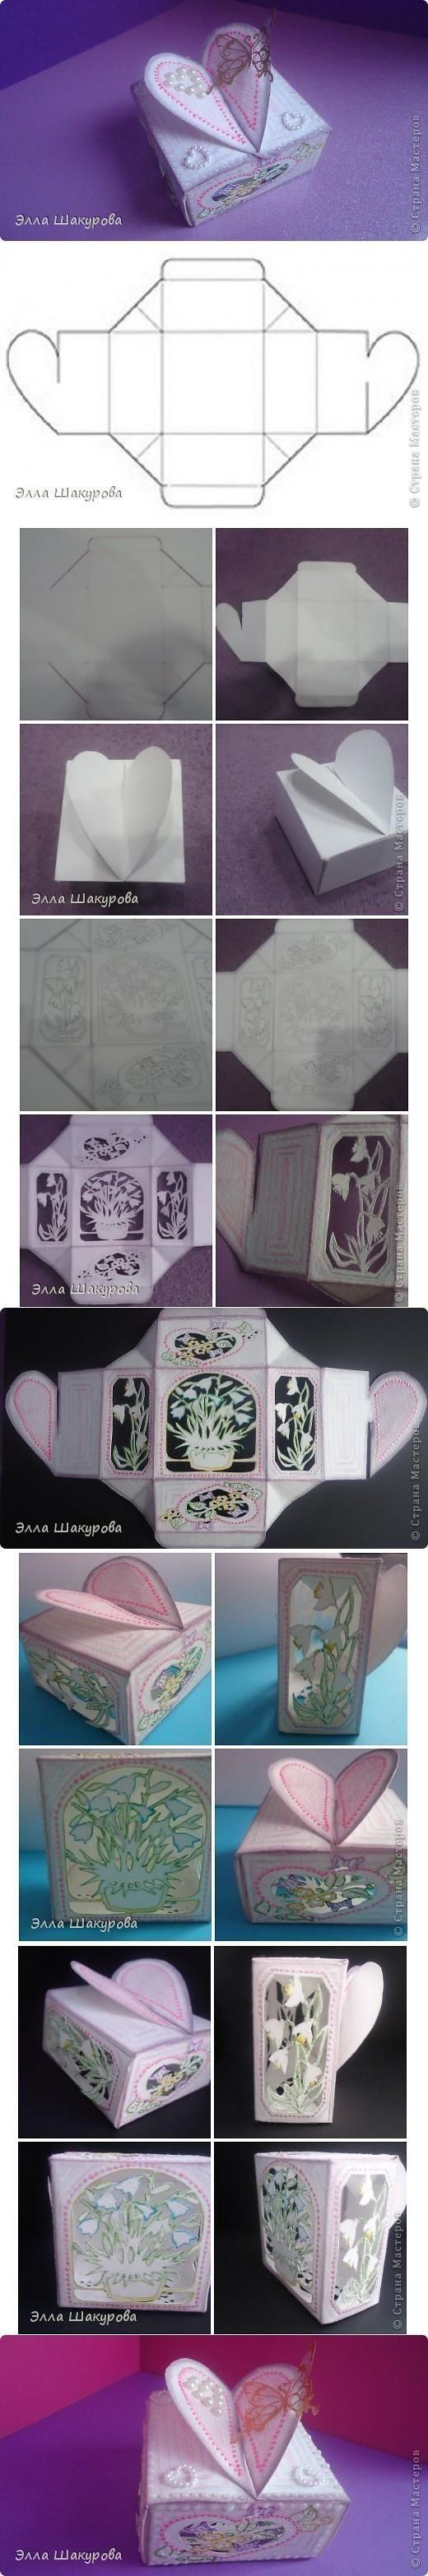 Shoebox Crafts Projects